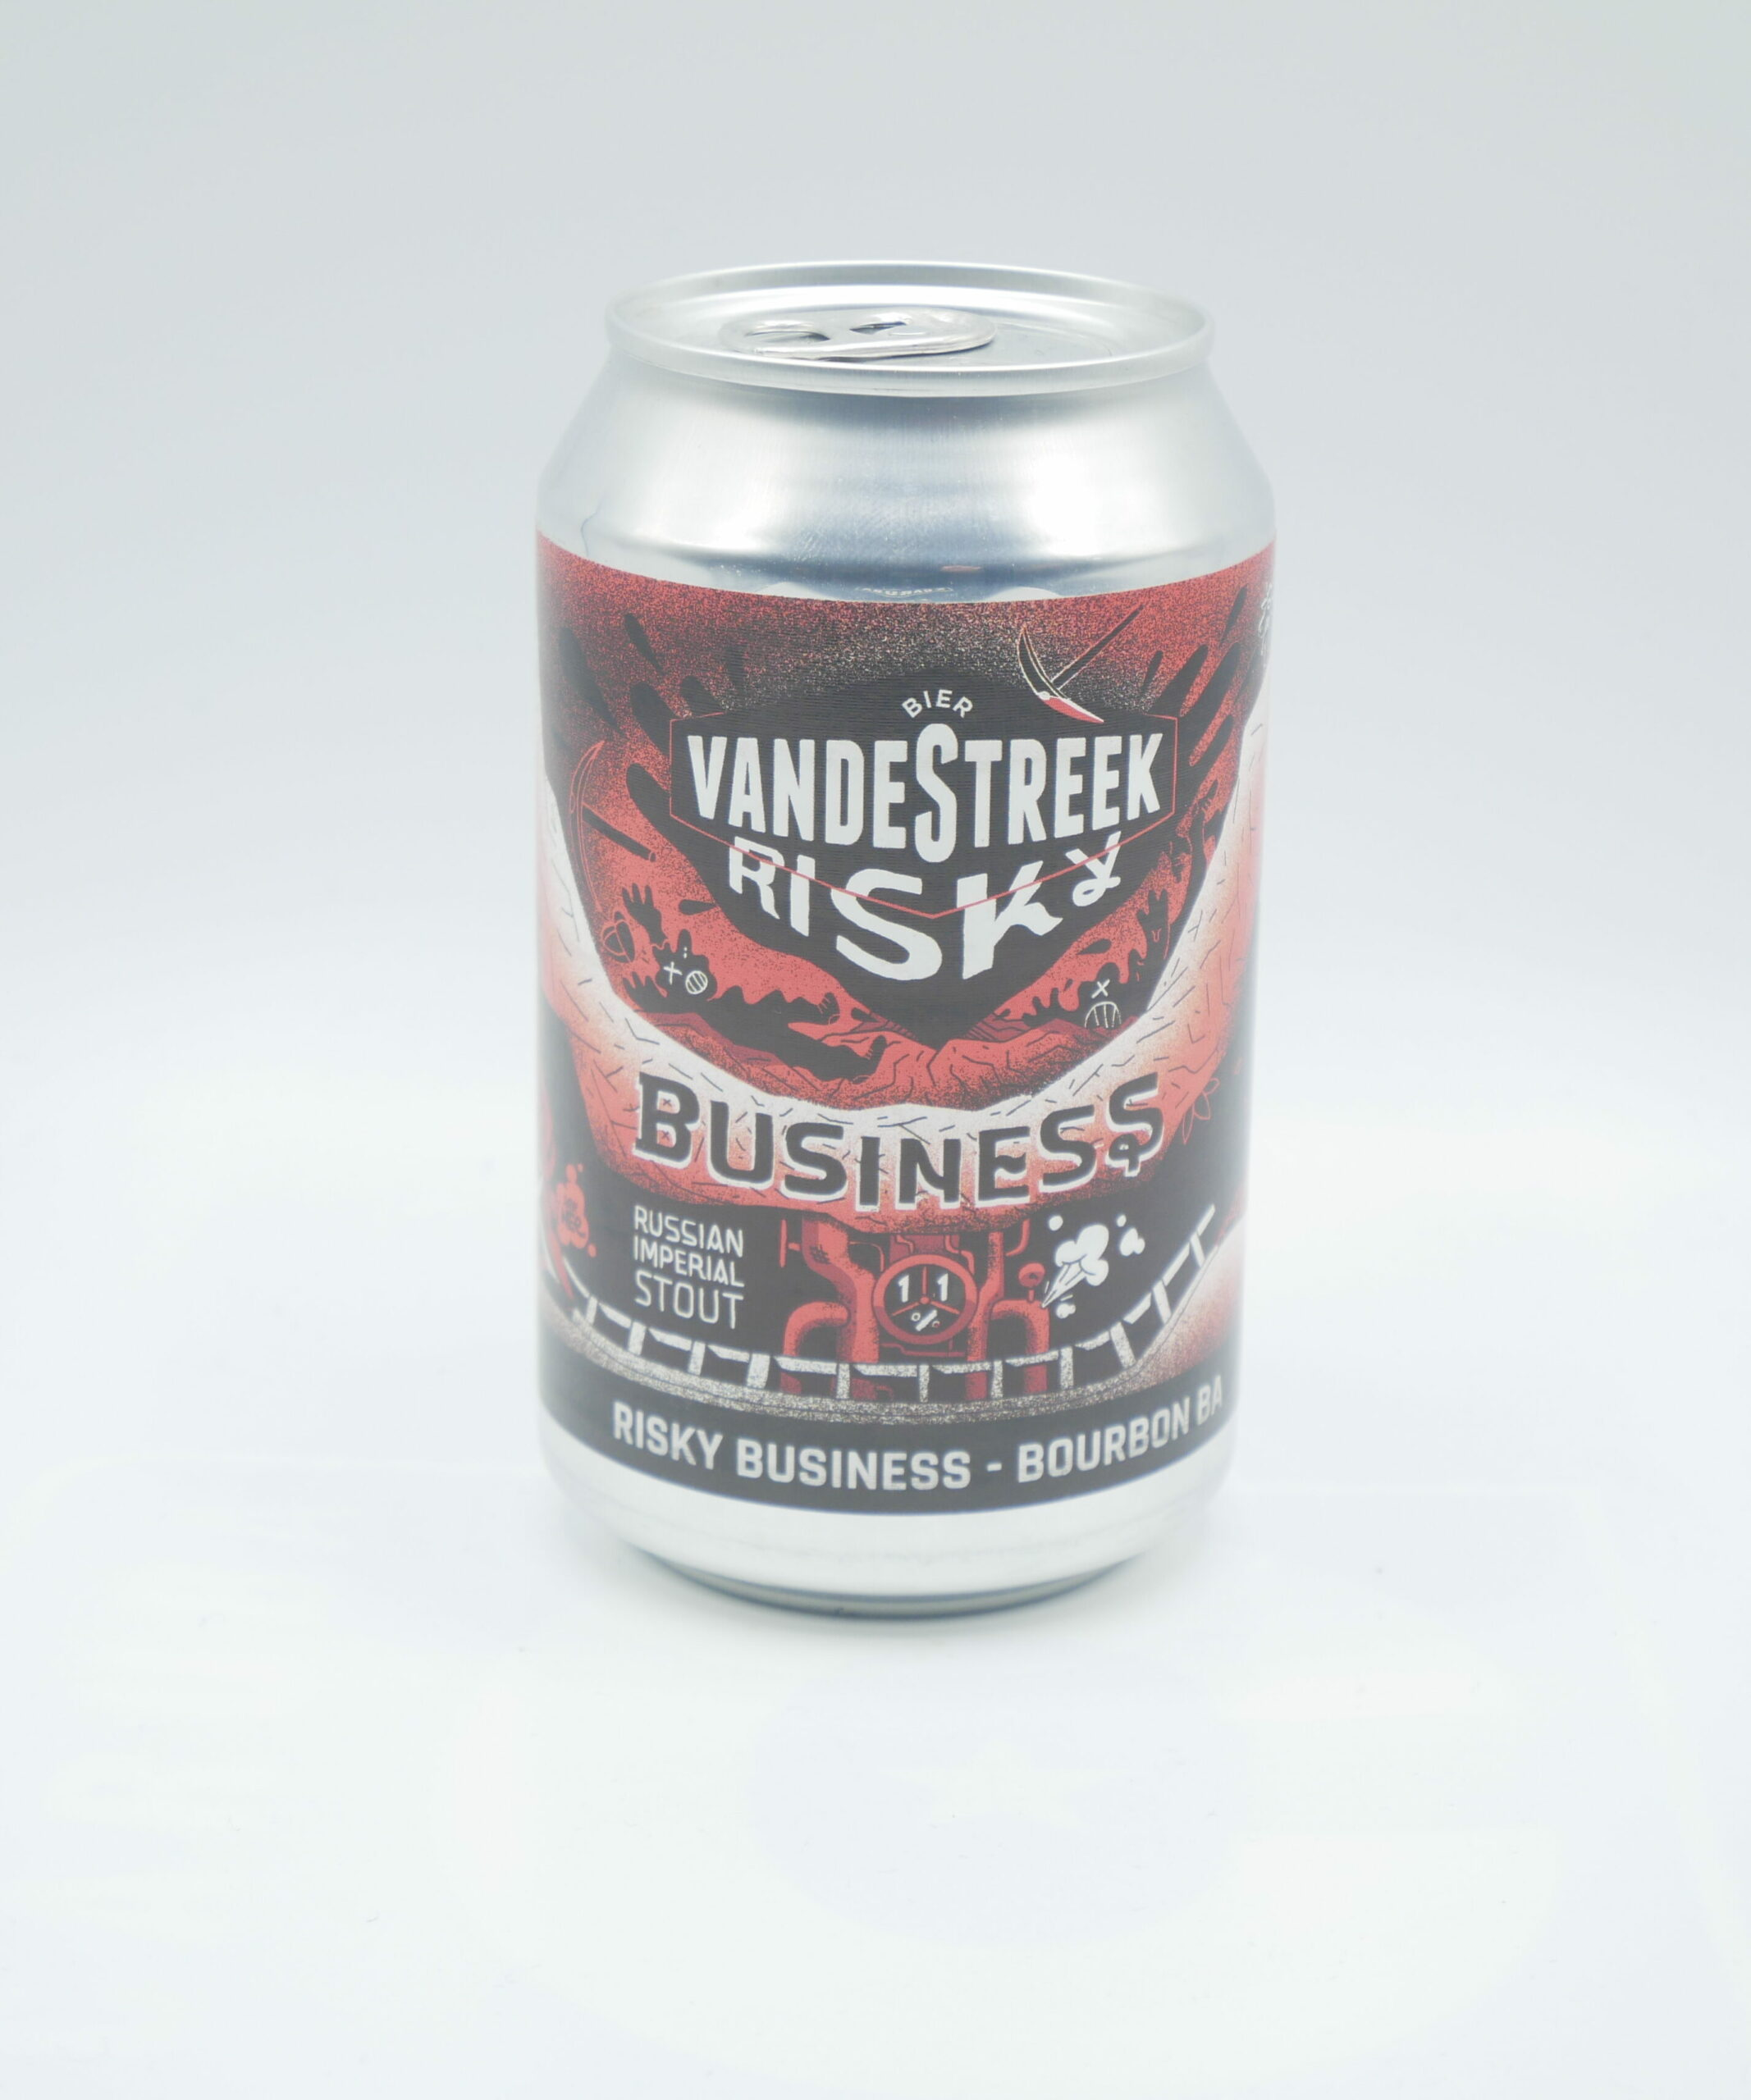 Image Vandestreek Risky business Bourbon Ba can